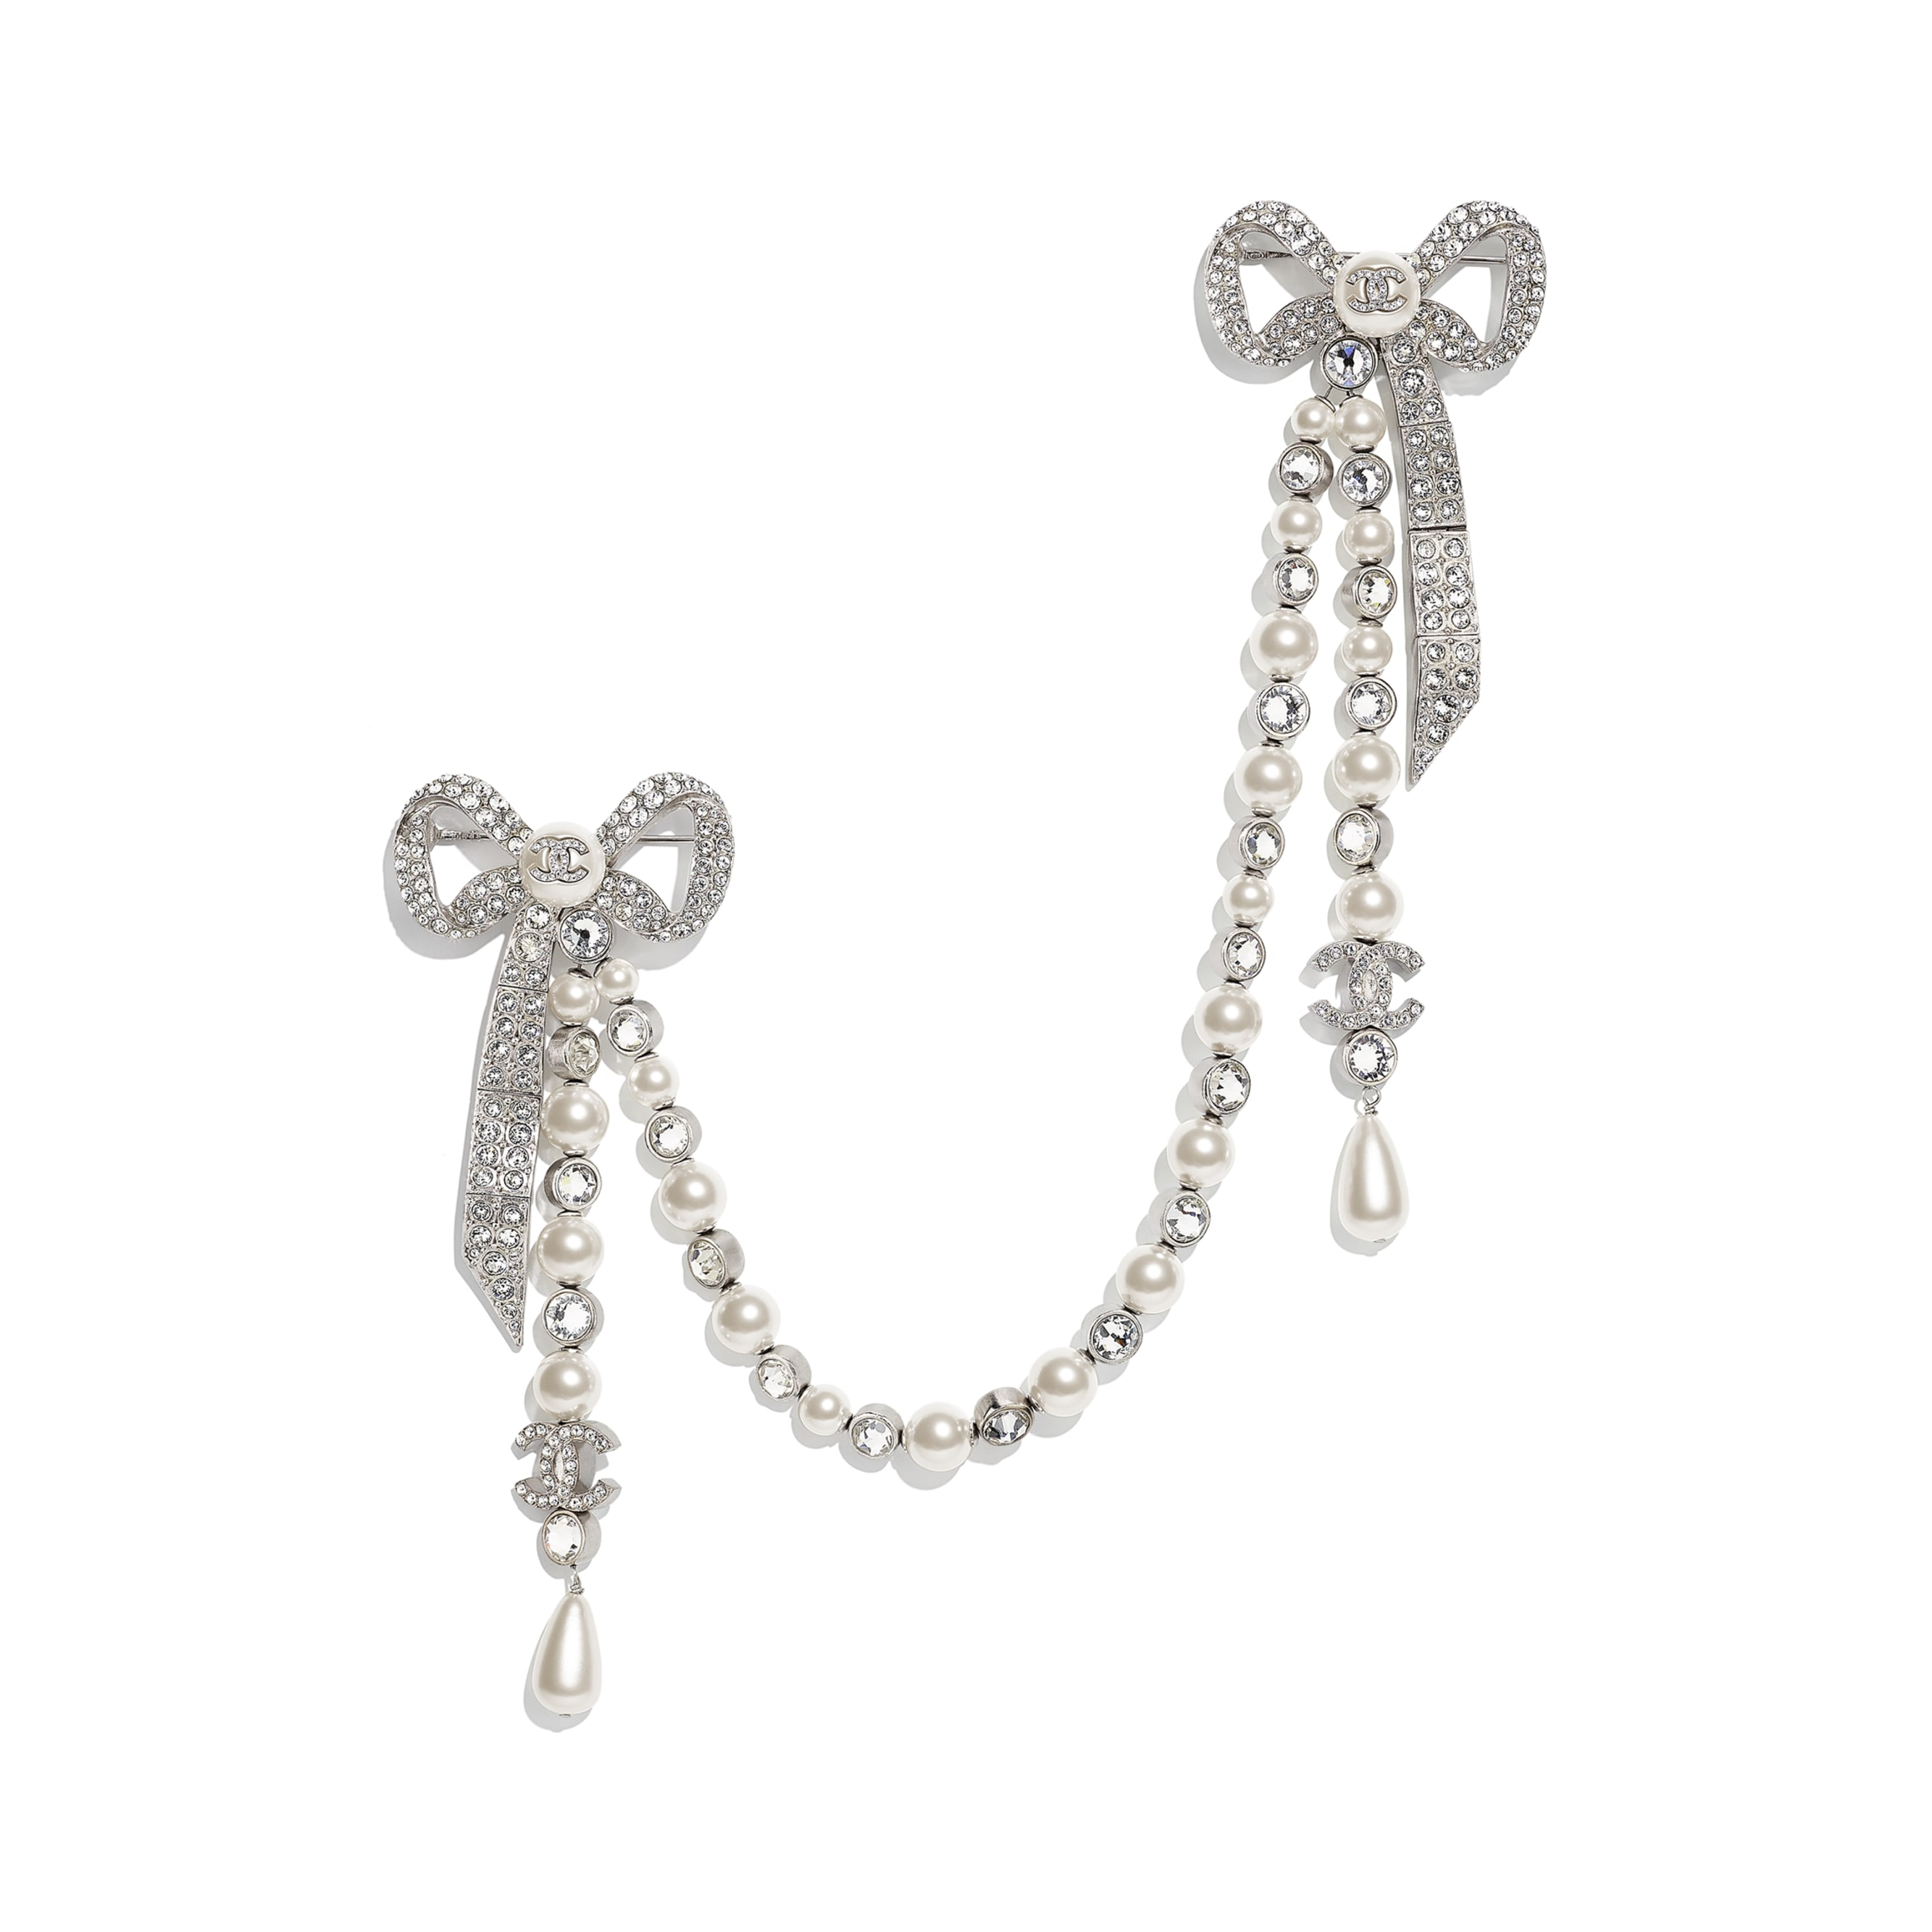 Brooch - Silver, Pearly White & Crystal - Metal, Glass Pearls, Imitation Pearls & Diamanté - CHANEL - Default view - see standard sized version